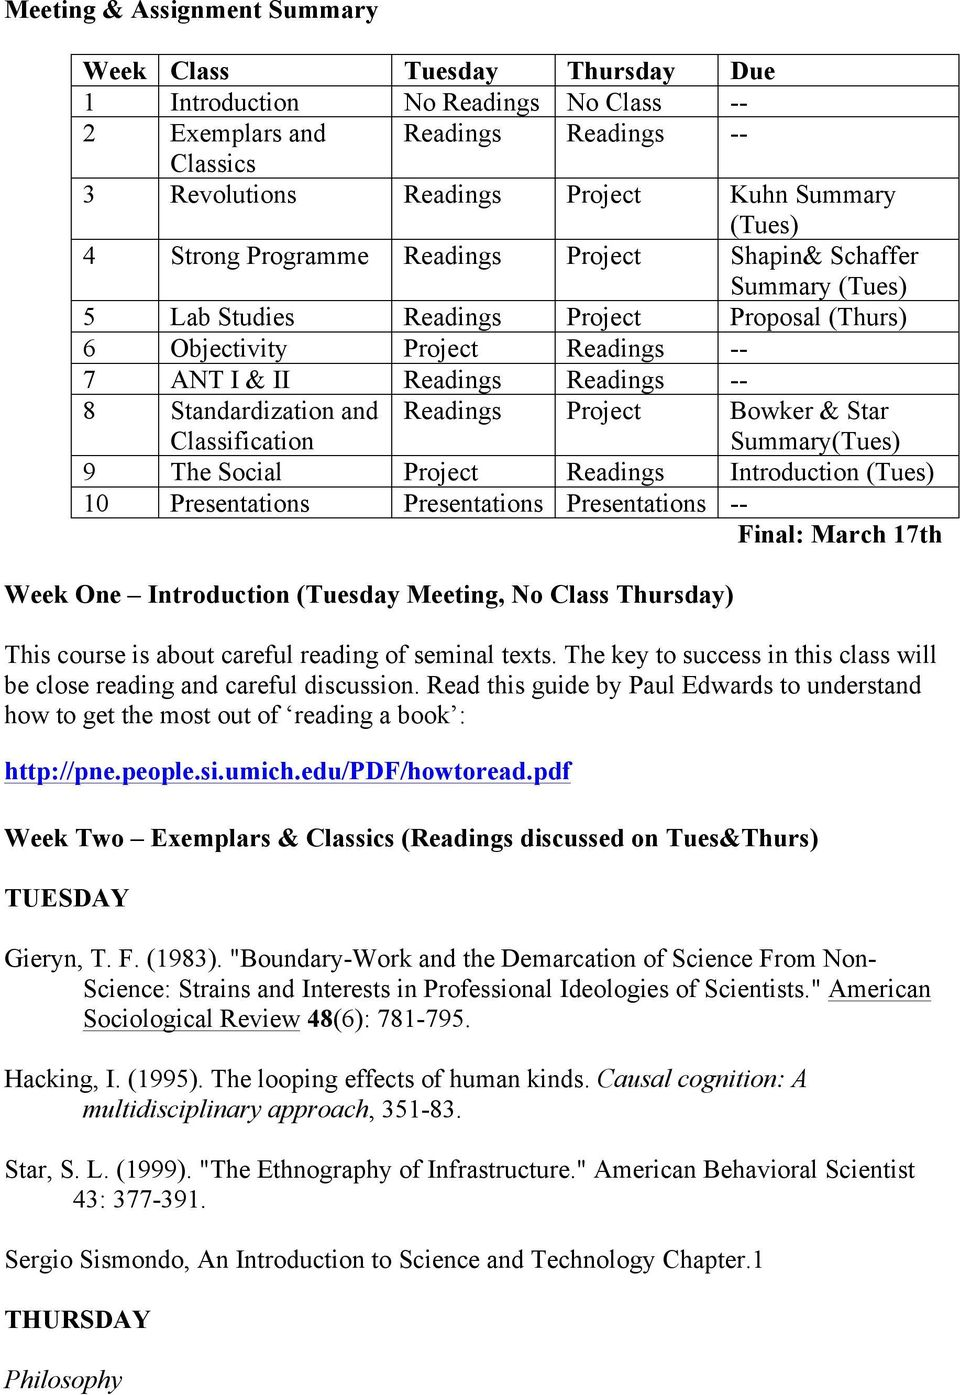 and Classification Readings Project Bowker & Star Summary(Tues) 9 The Social Project Readings Introduction (Tues) 10 Presentations Presentations Presentations -- Final: March 17th Week One